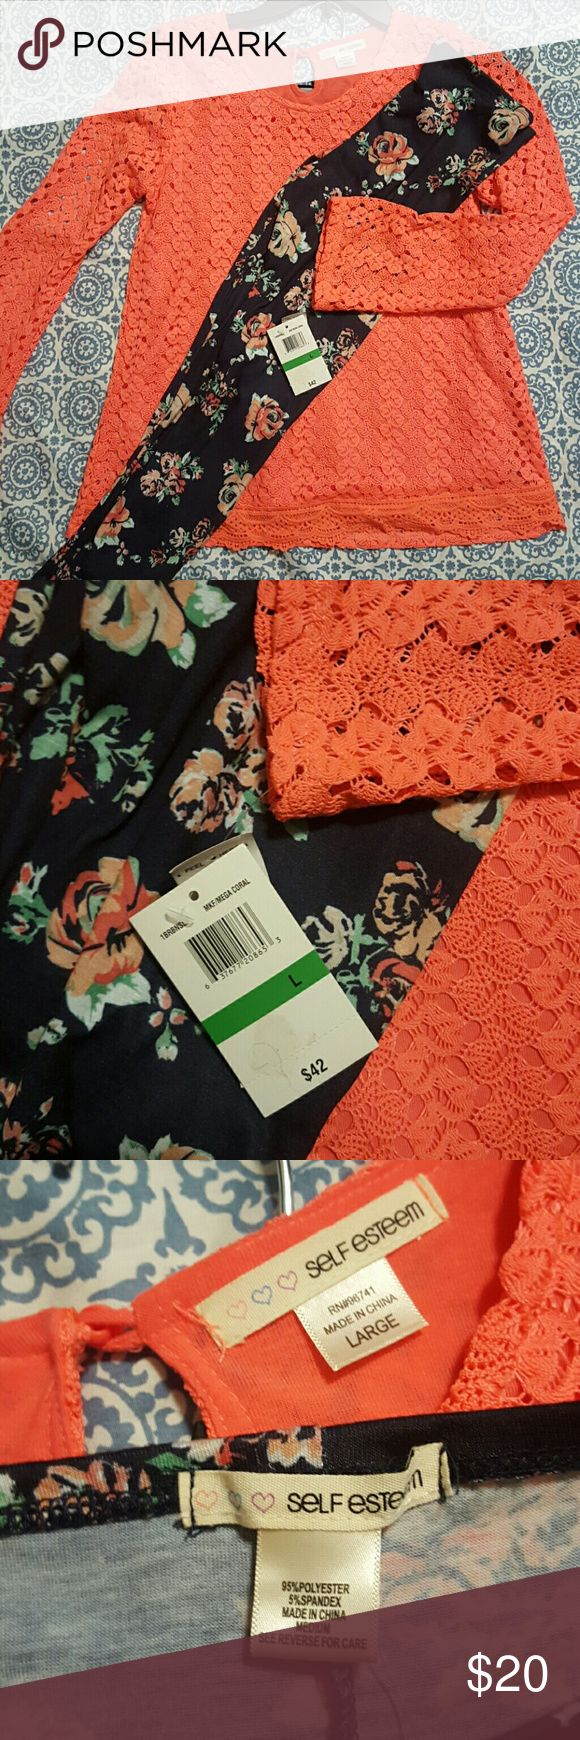 Girls Tunic With Leggings Coral Crochet and lace tunic with navy floral print leggings.  NWT.  Top is a girls Large.  Leggings are girls Medium.  Great back to school outfit.     Check out my other listings for additional discount on bundles! Self Esteem Matching Sets